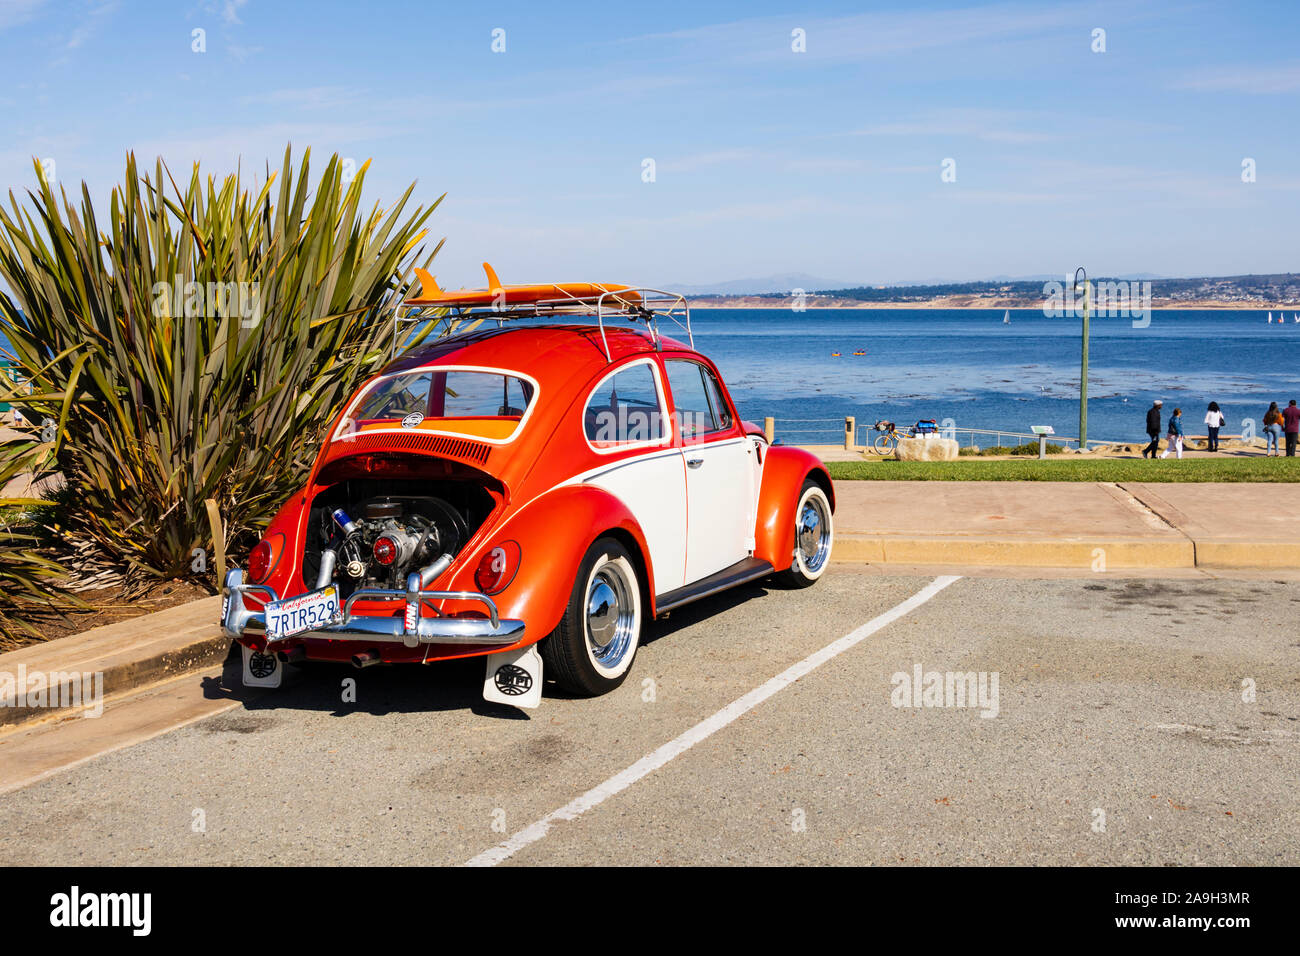 Custom Volkswagen Beetle High Resolution Stock Photography And Images Alamy